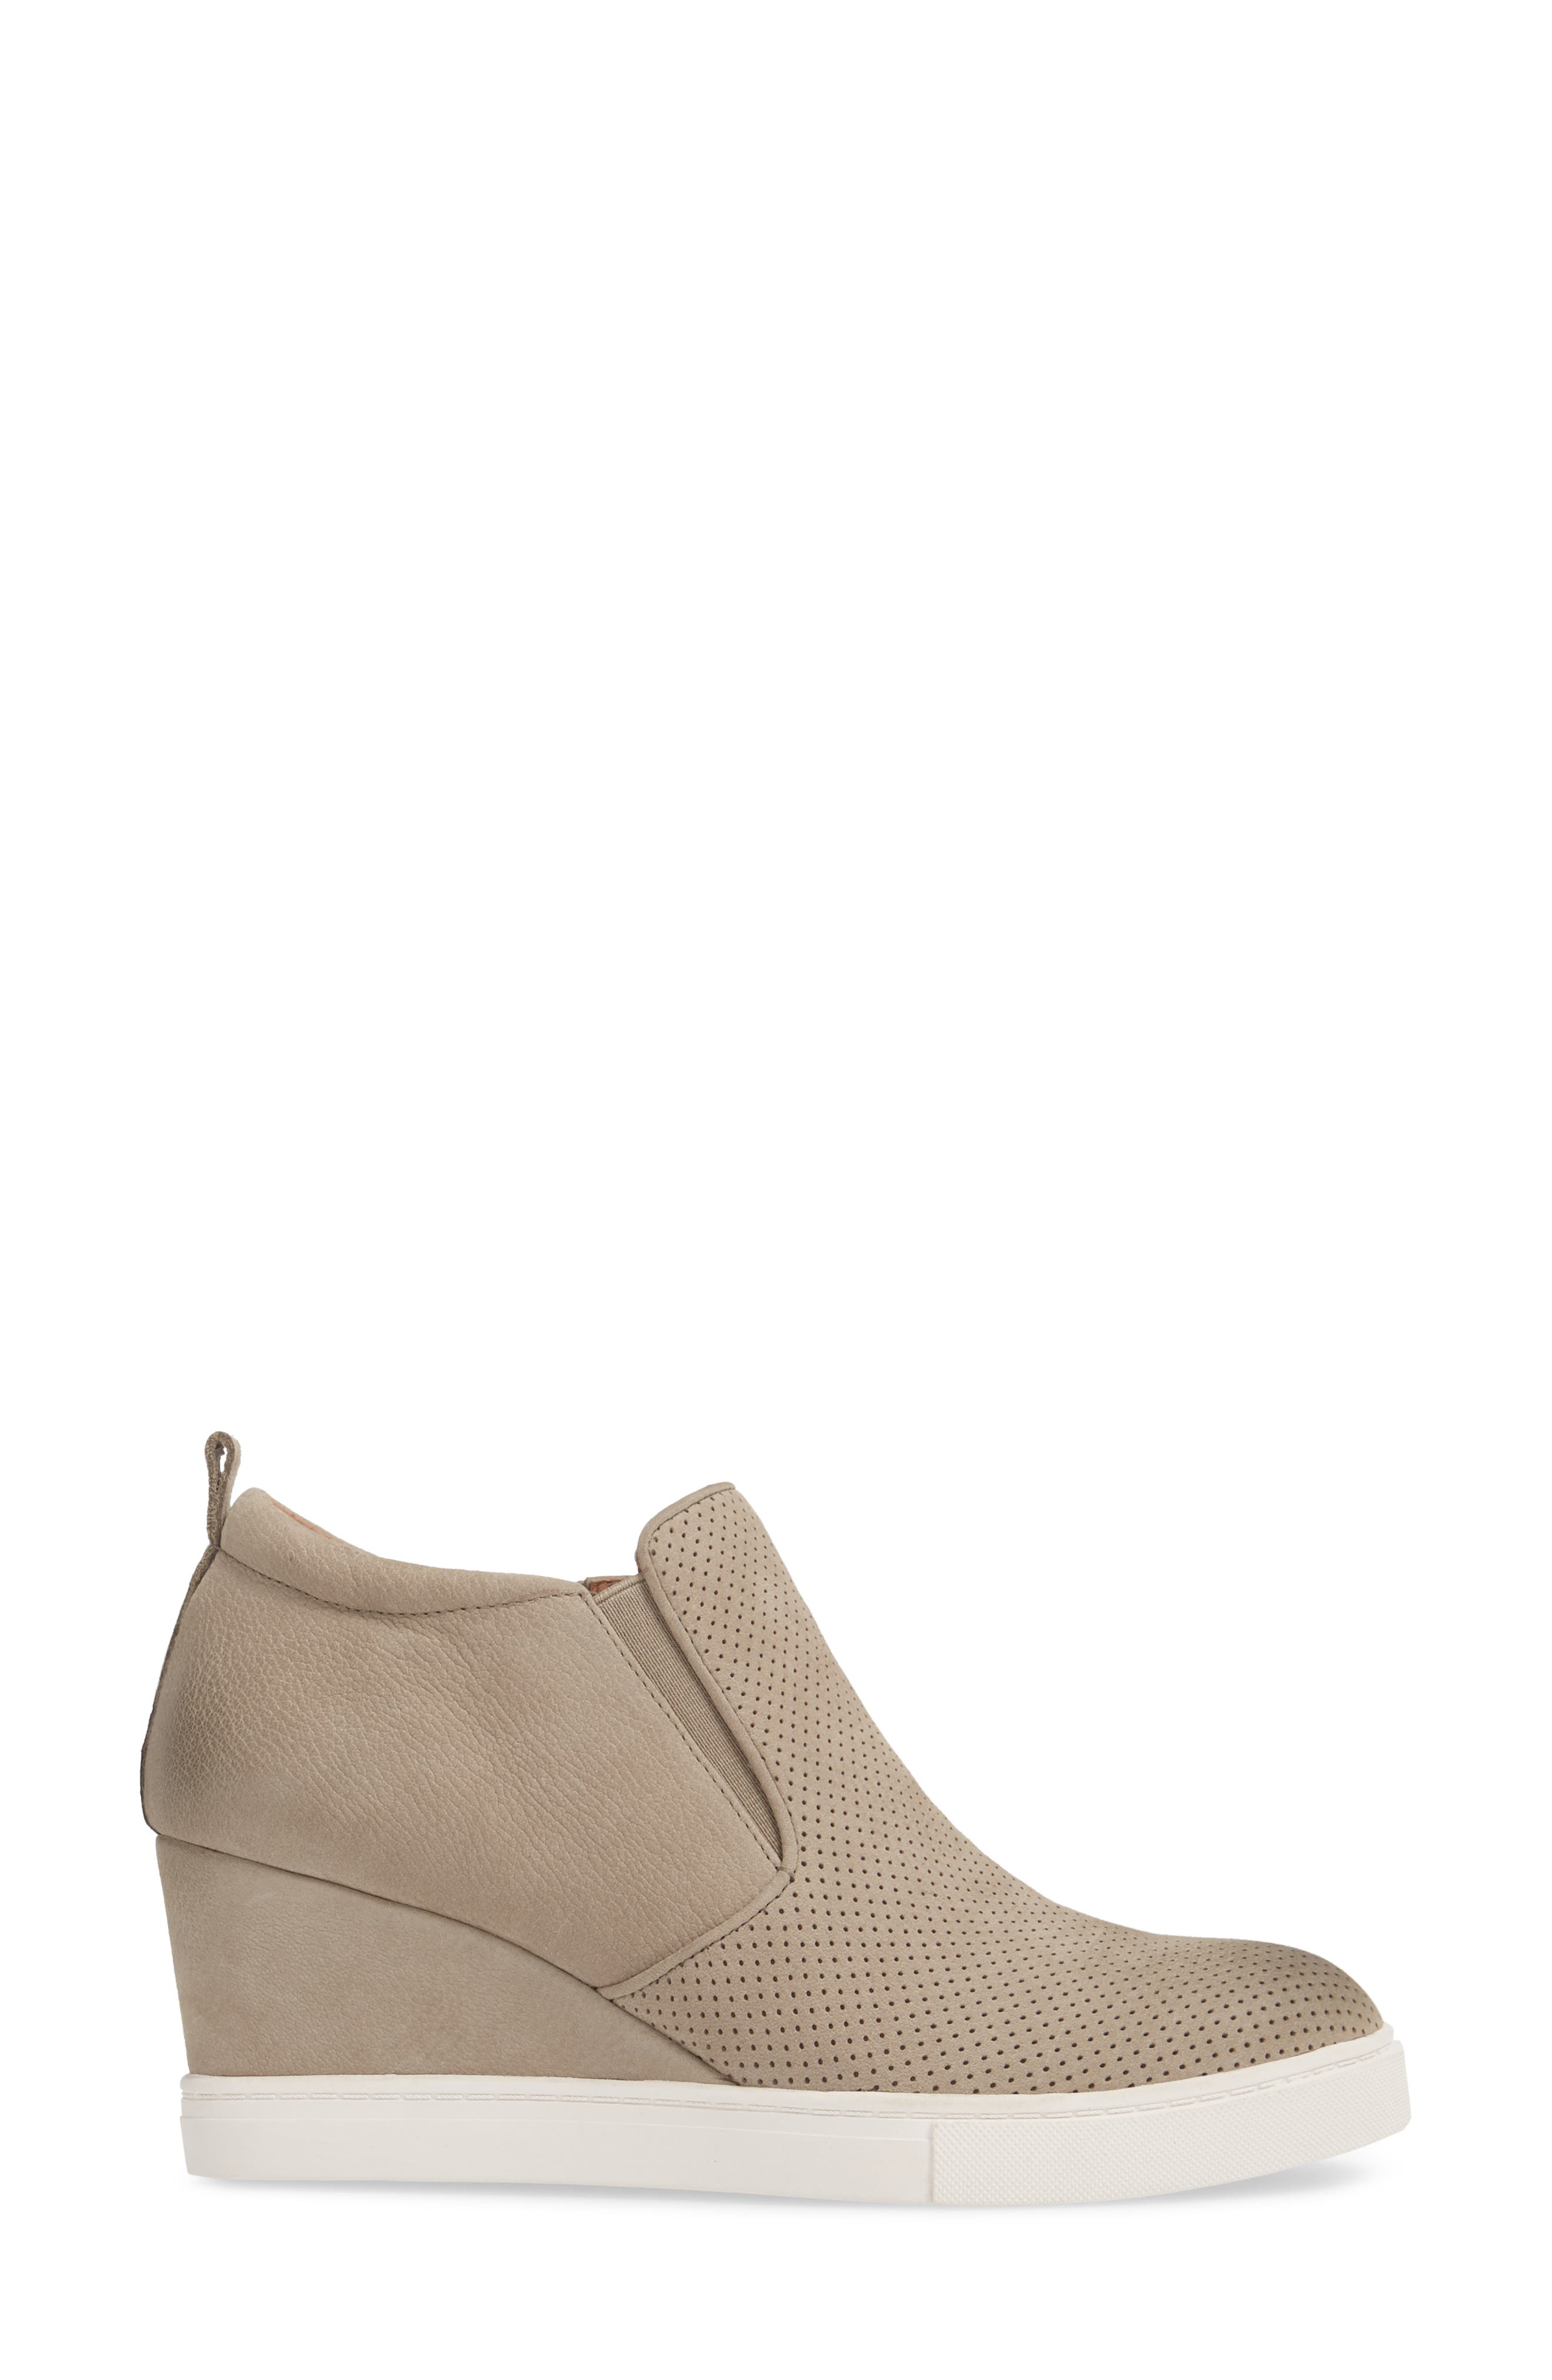 Aiden Wedge Sneaker,                             Alternate thumbnail 3, color,                             Taupe Perforated Leather